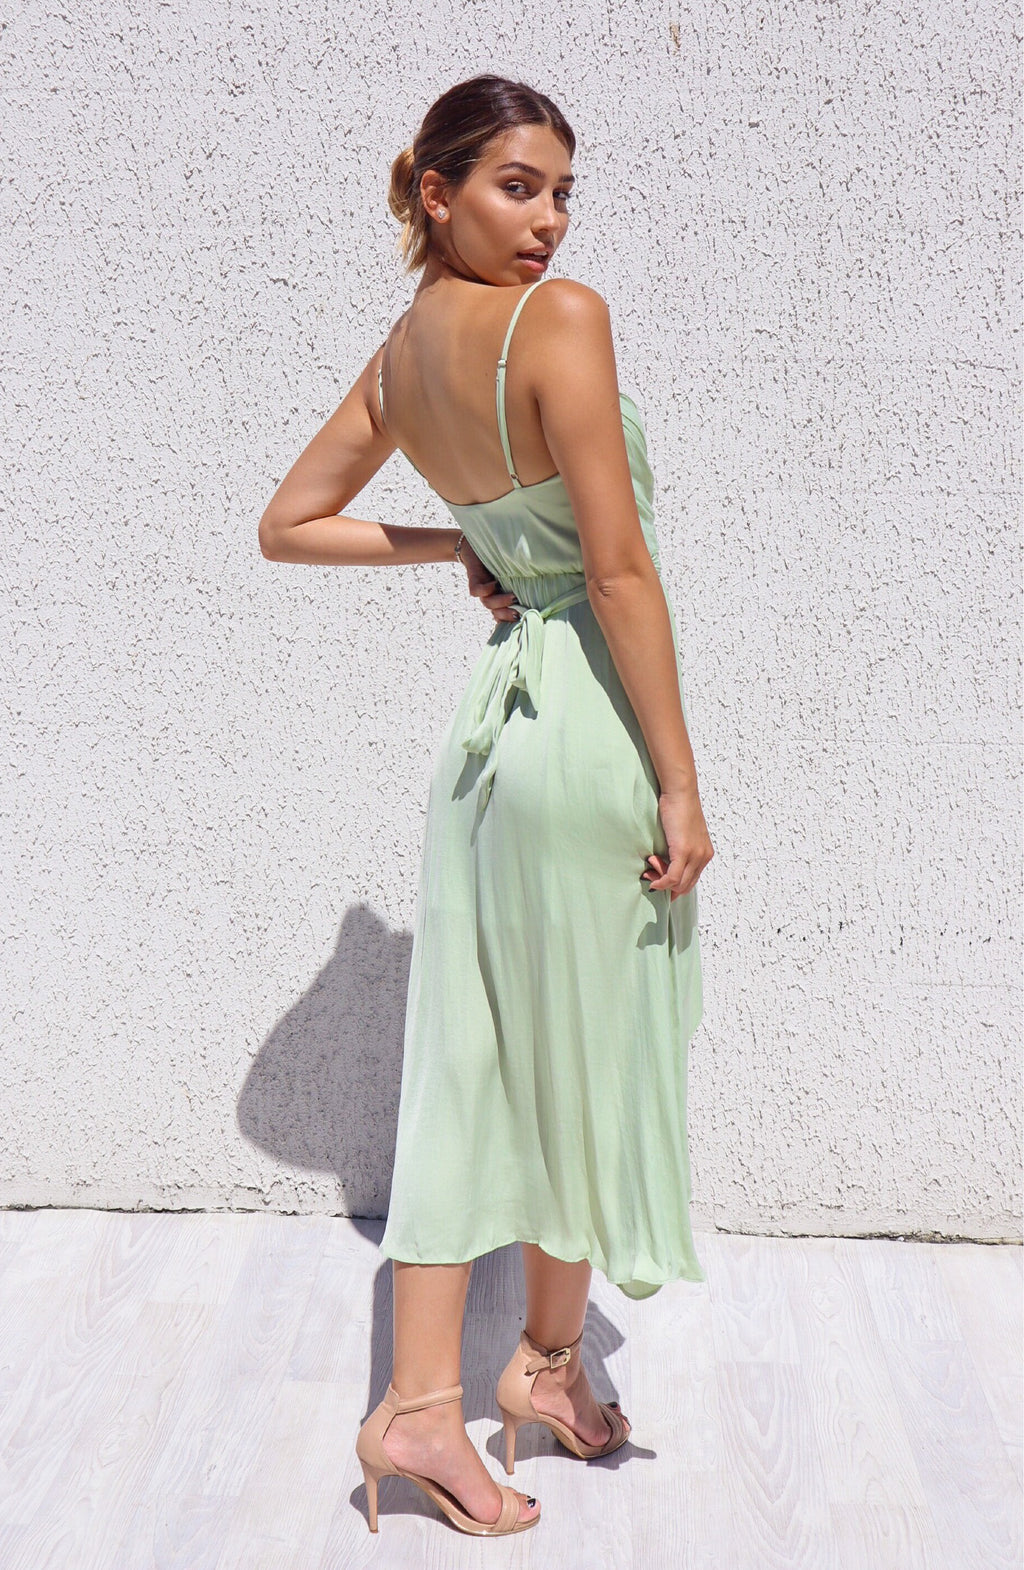 Cloud Nine Dress - Pistachio